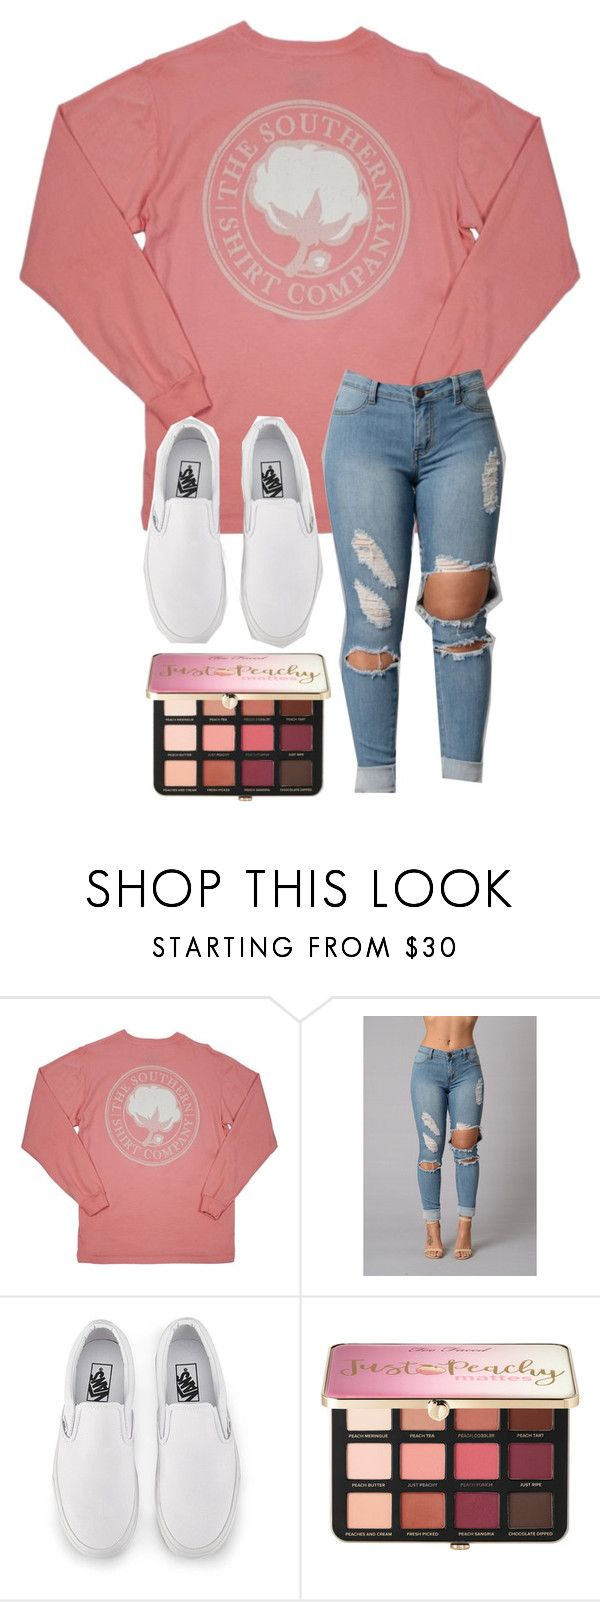 """Untitled #417"" by koiiii ❤ liked on Polyvore featuring Vans and Sephora Collection"